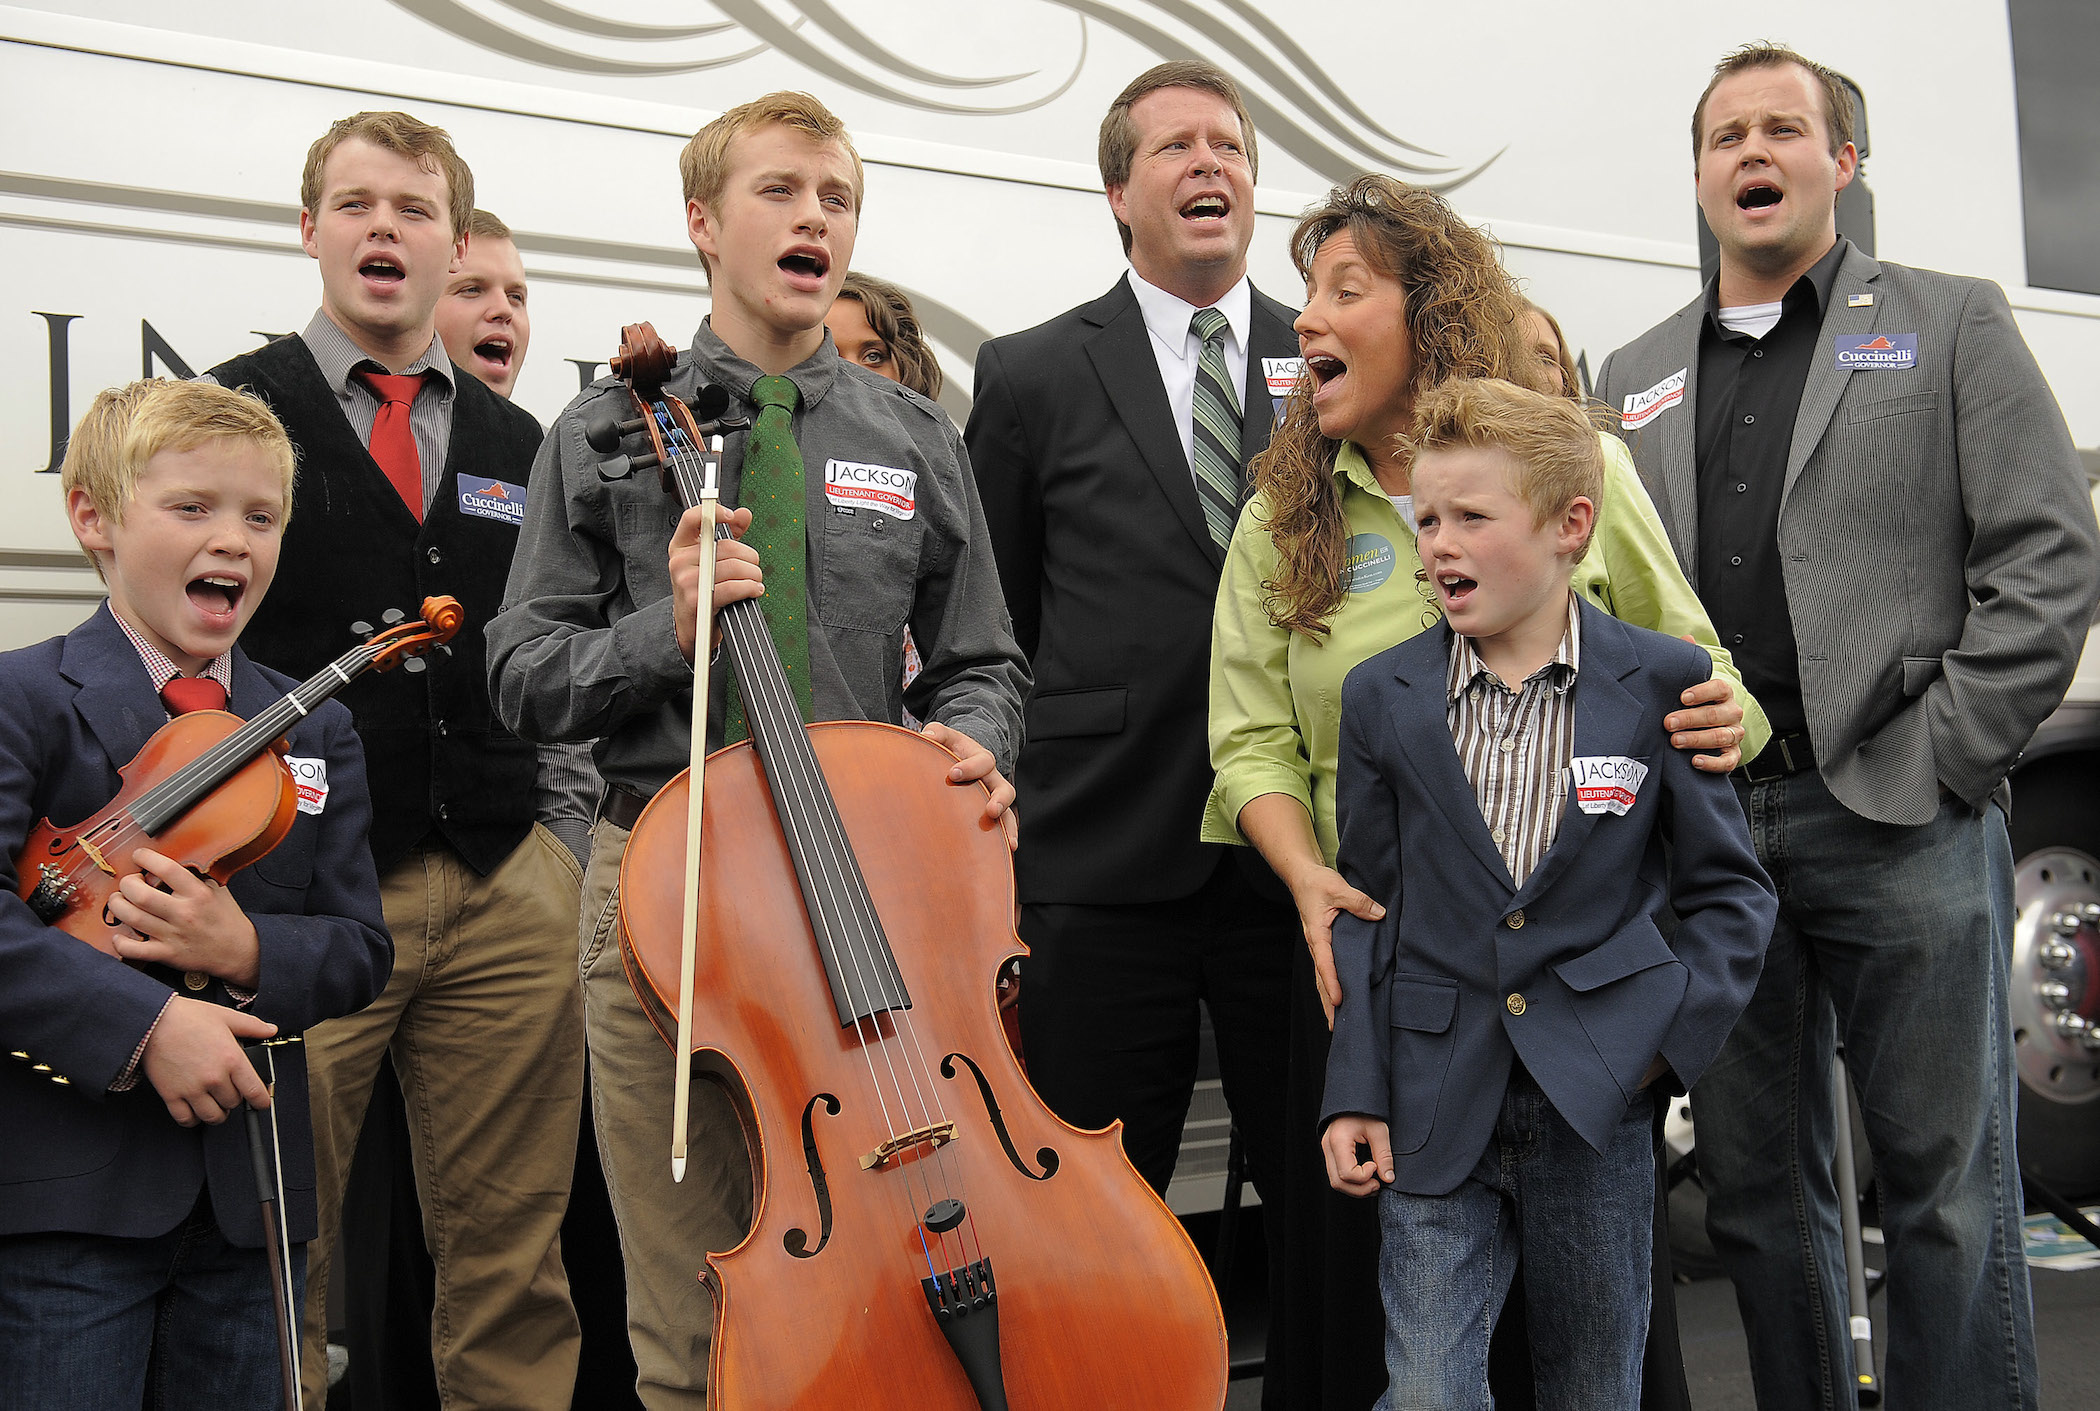 Jed Duggar S Alleged Best Friend Is Spilling Details About The Duggar Family Wedding